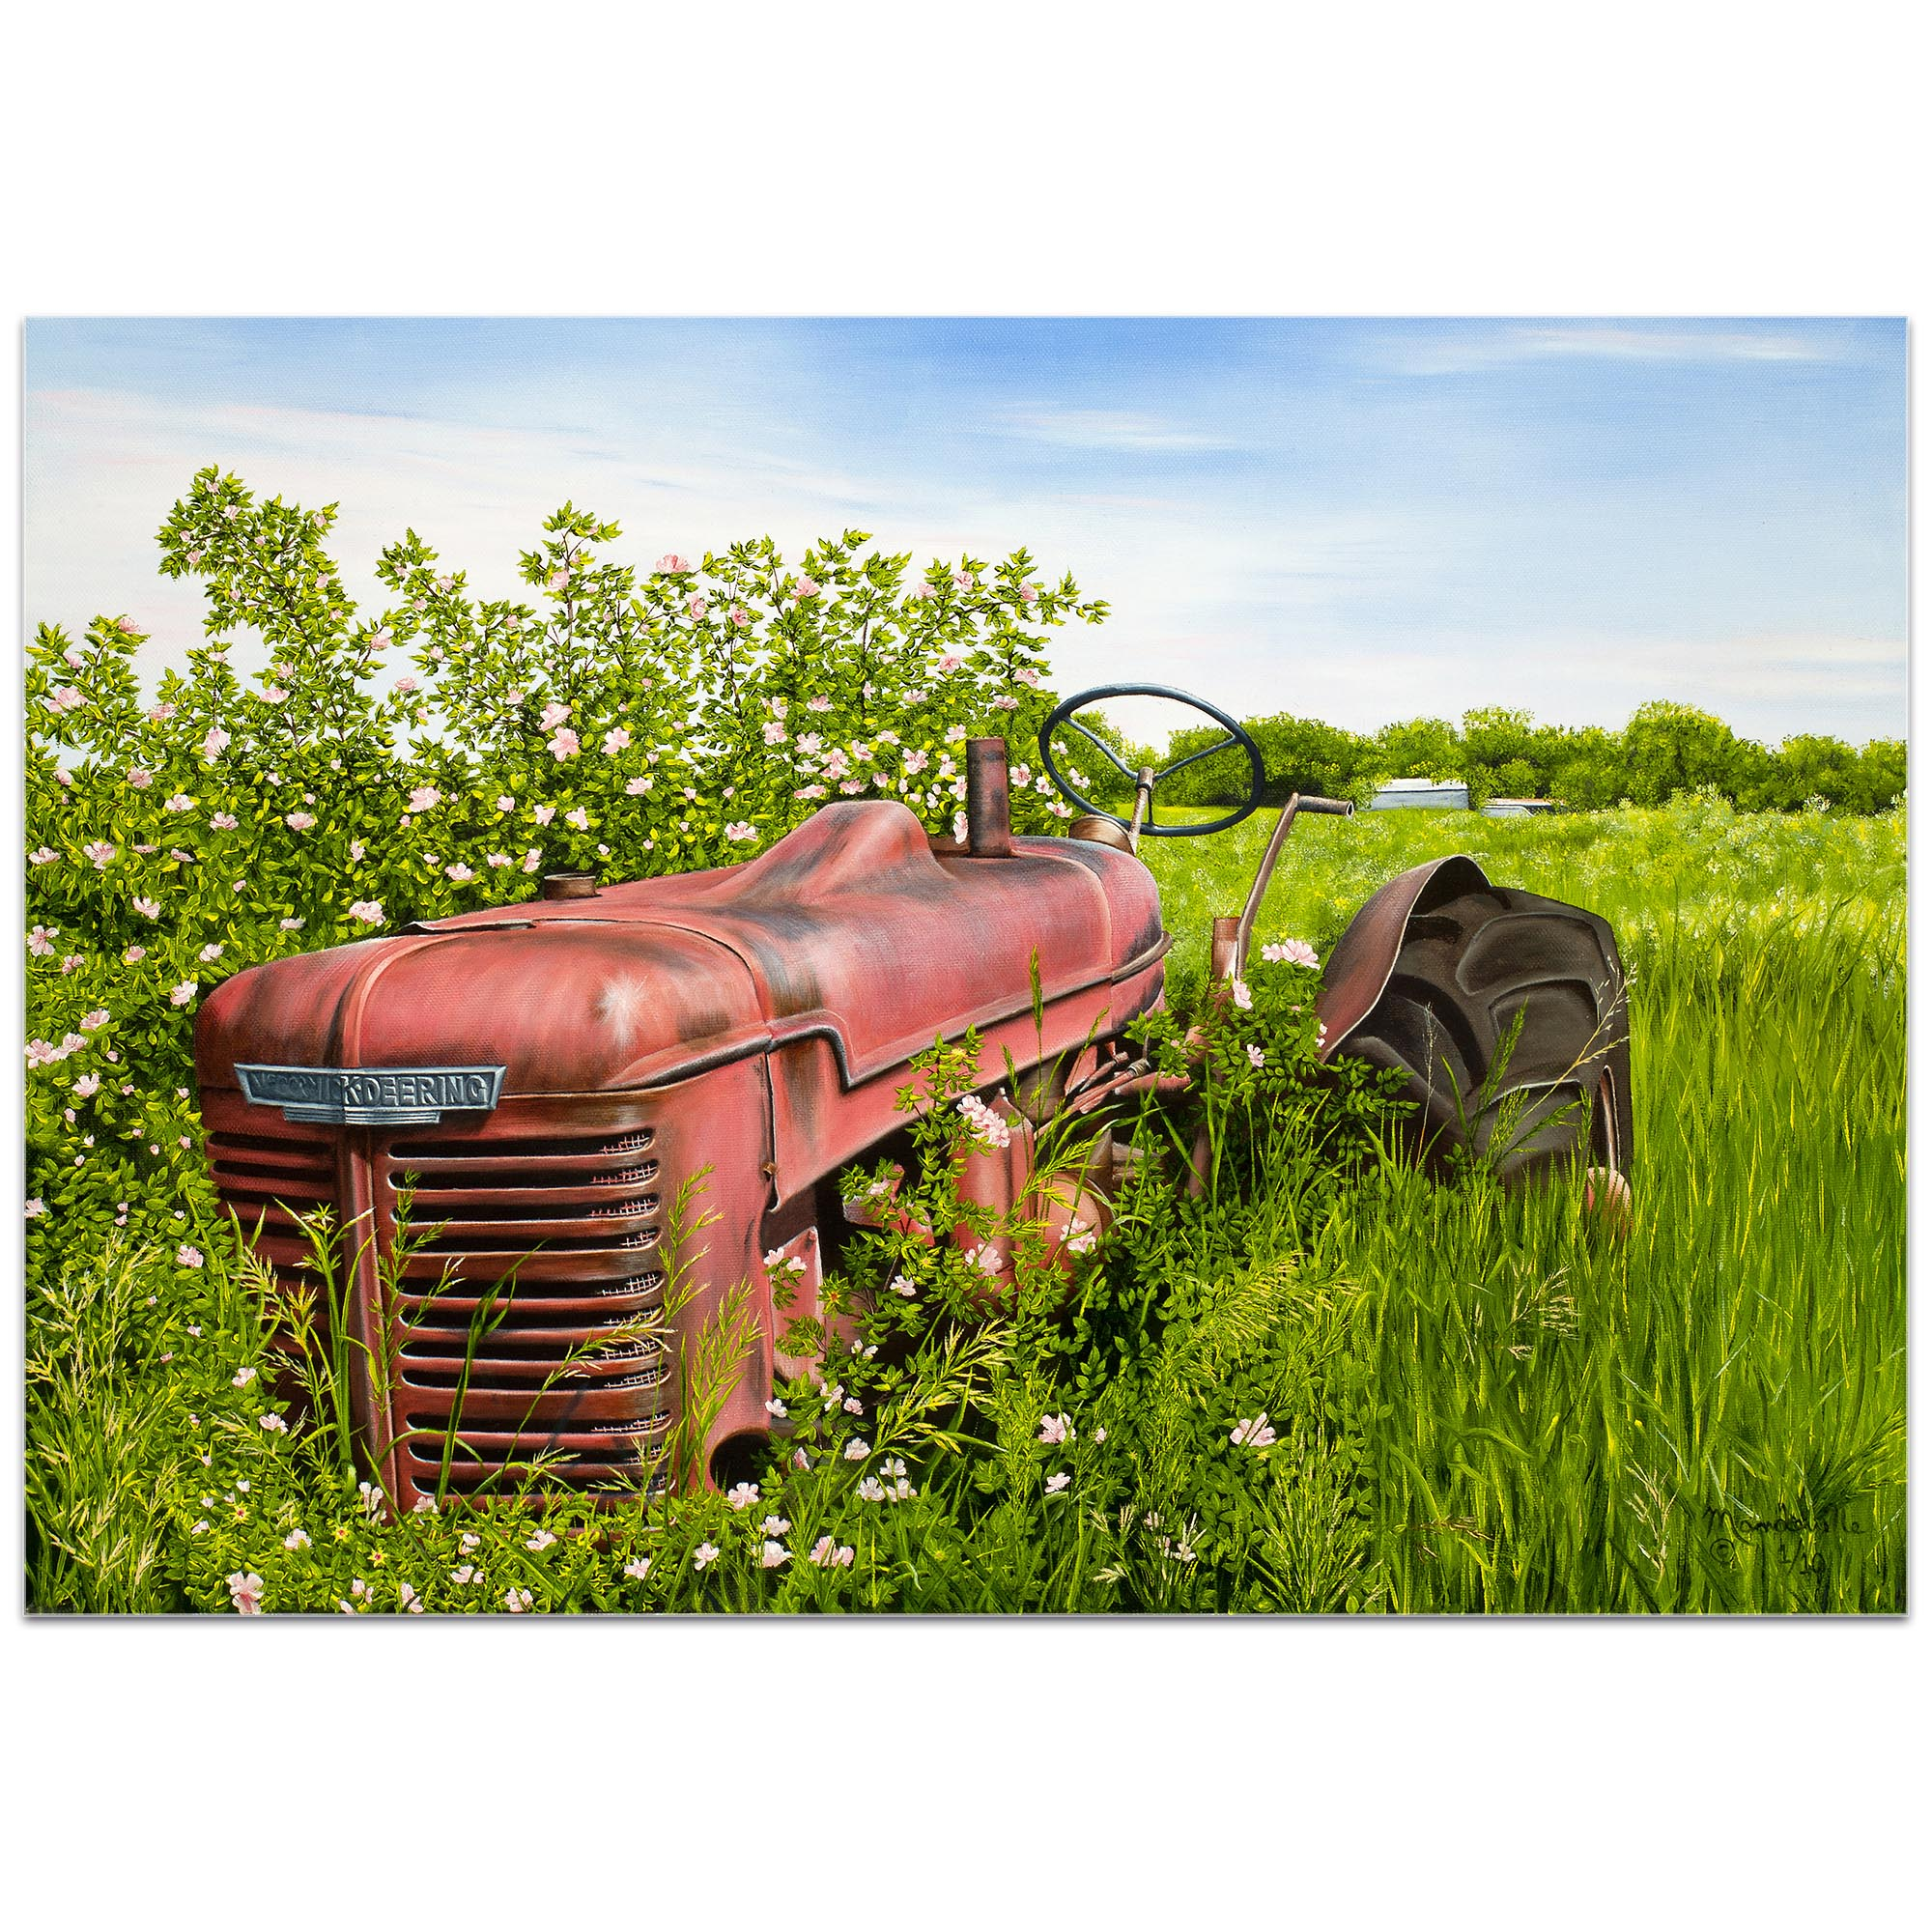 Americana Wall Art 'A Blanket of Roses' - Classic Tractor Decor on Metal or Plexiglass - Image 2